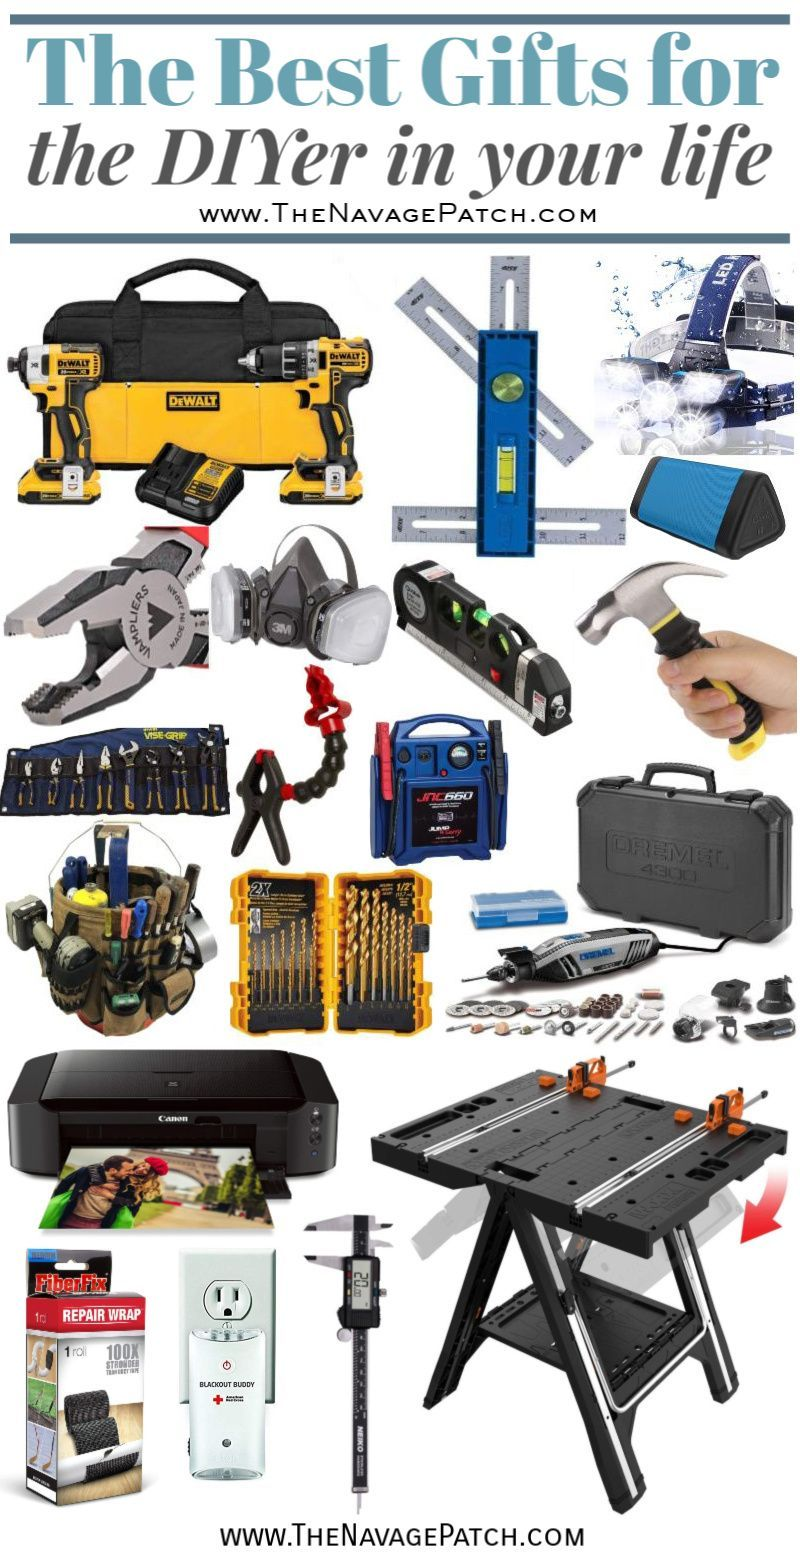 Gift Guide For Diyers Diyer Gift Guide Old Tools